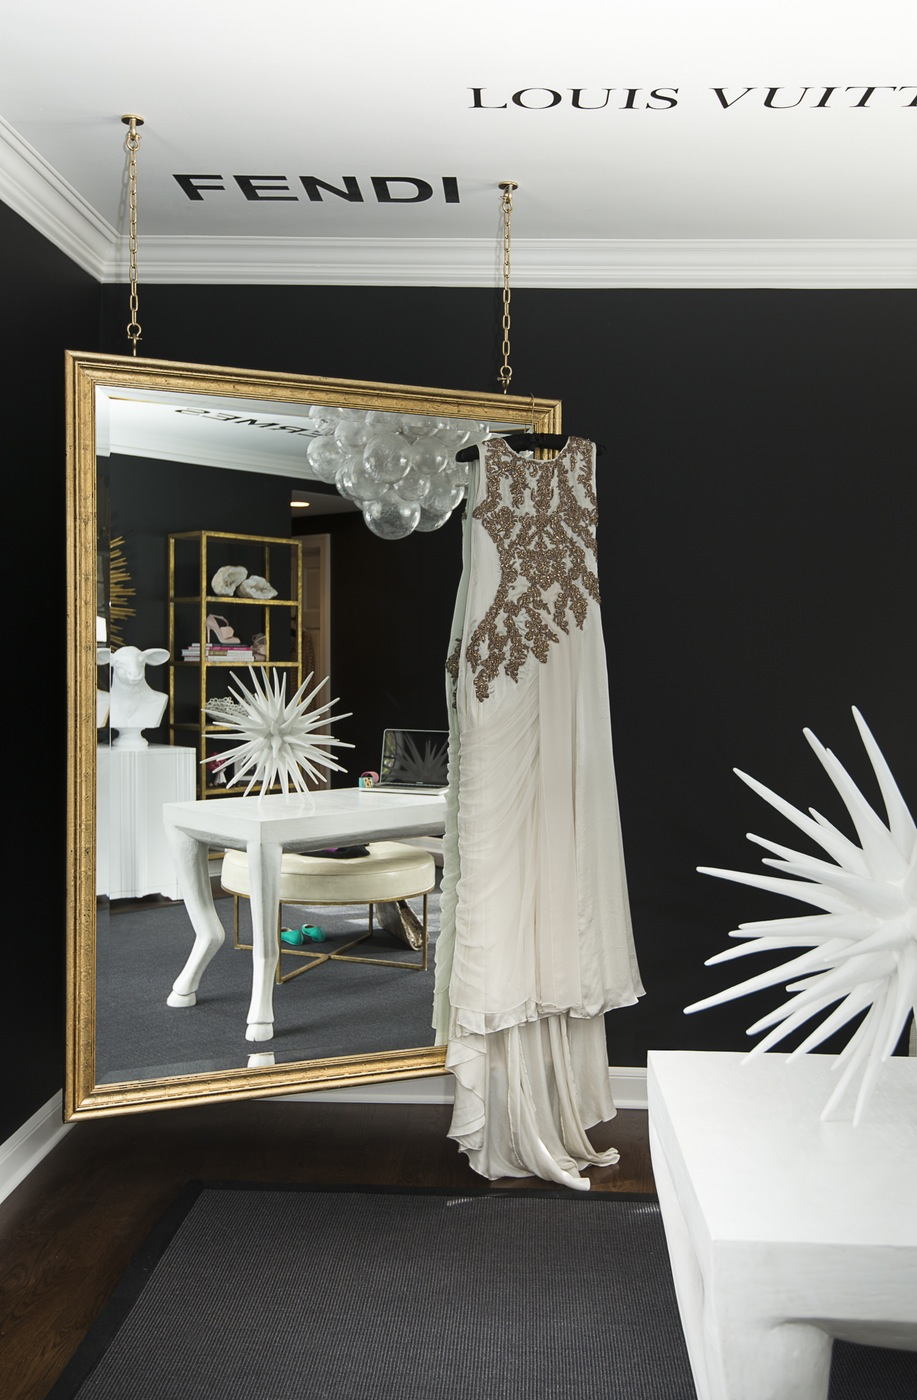 fashion blogger designer chanel hermes prada gucci wall decals transitional black and white home office inspiration ideas gold hanging mirrors dream closet